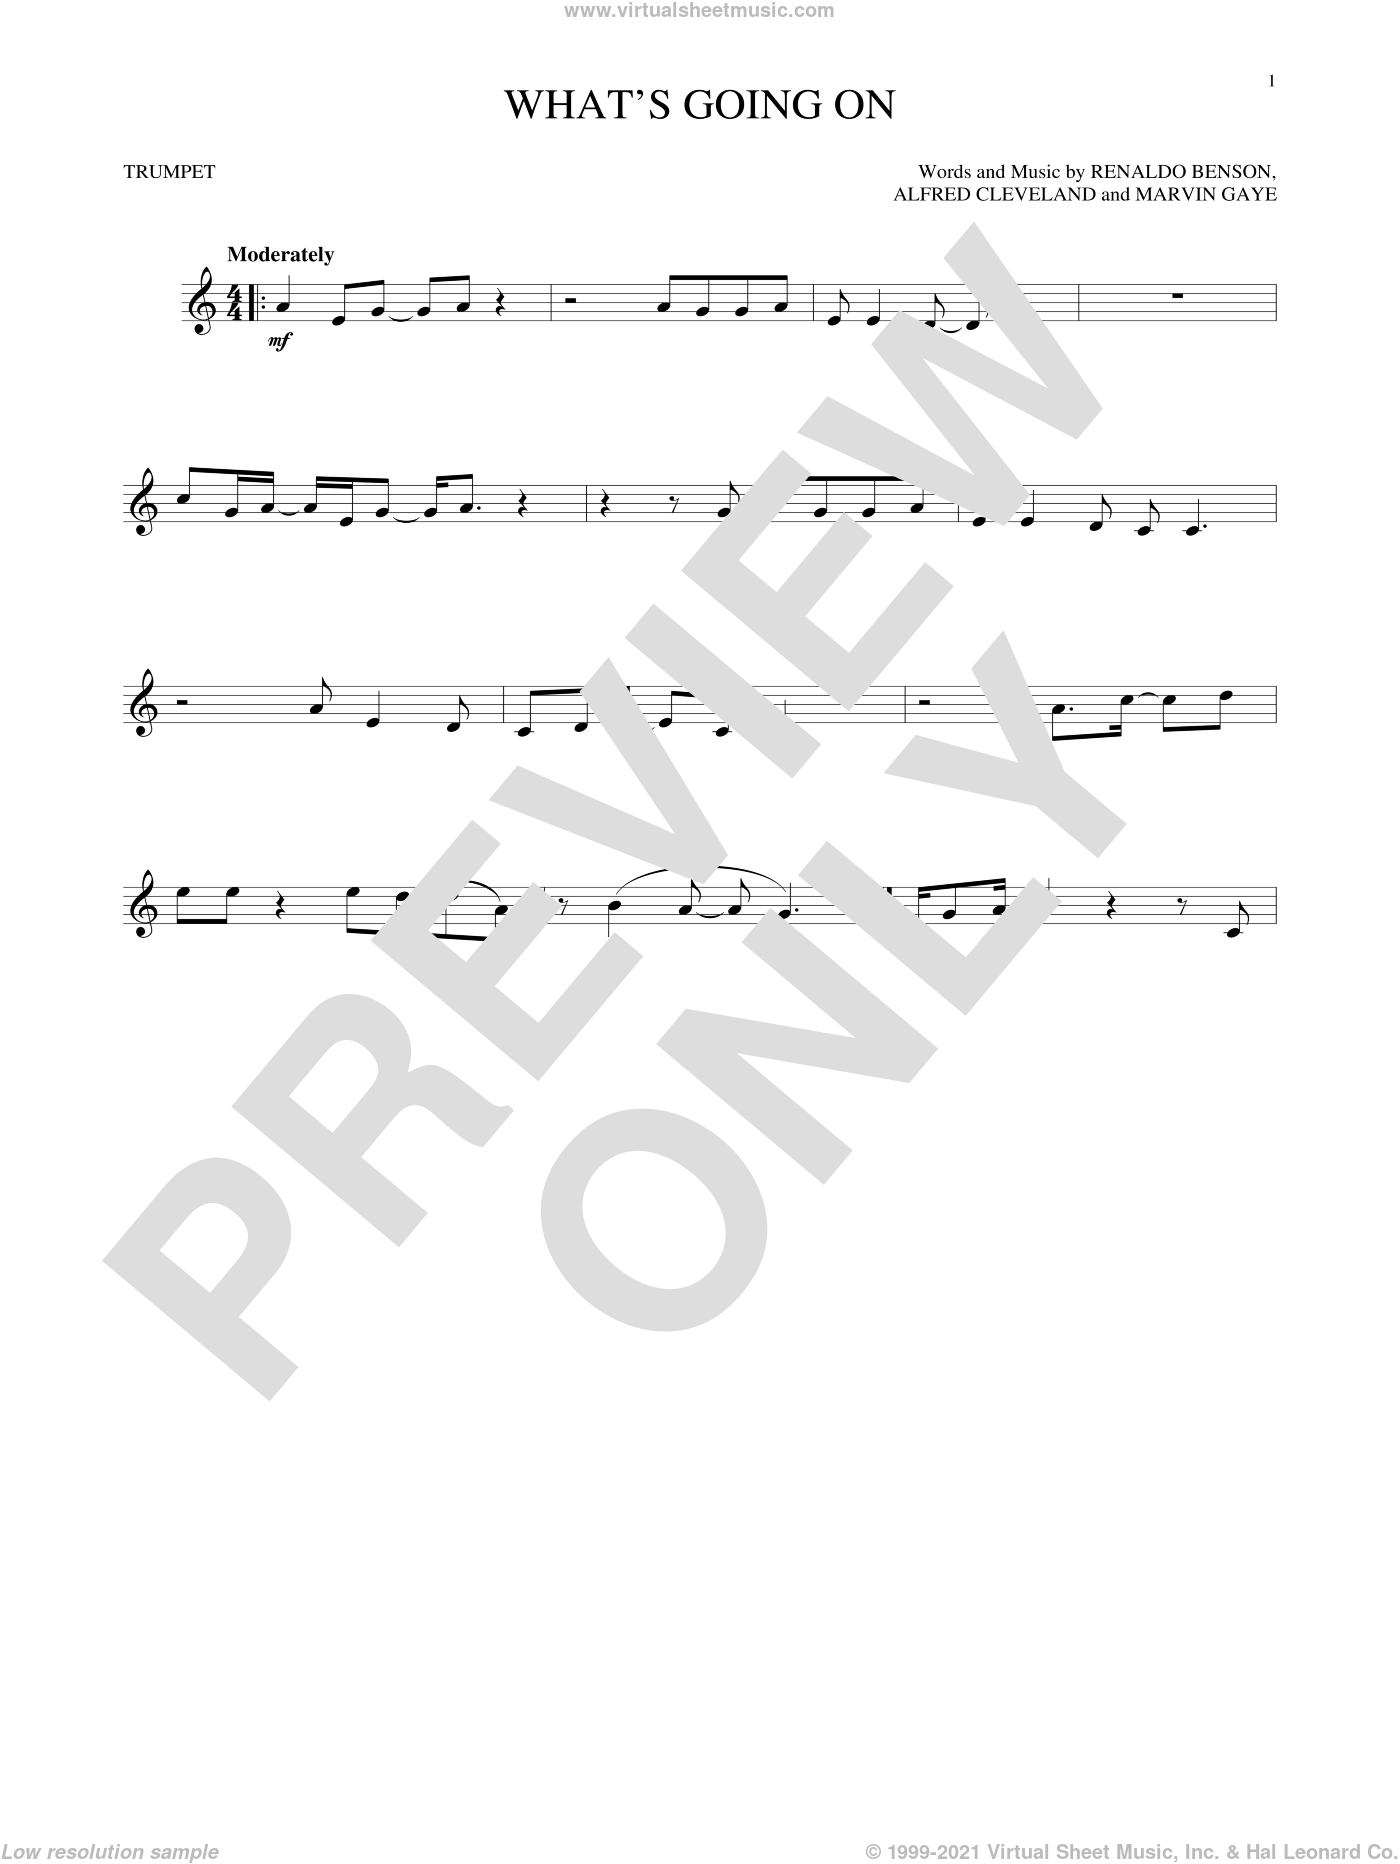 What's Going On sheet music for trumpet solo by Marvin Gaye, Al Cleveland and Renaldo Benson, intermediate skill level